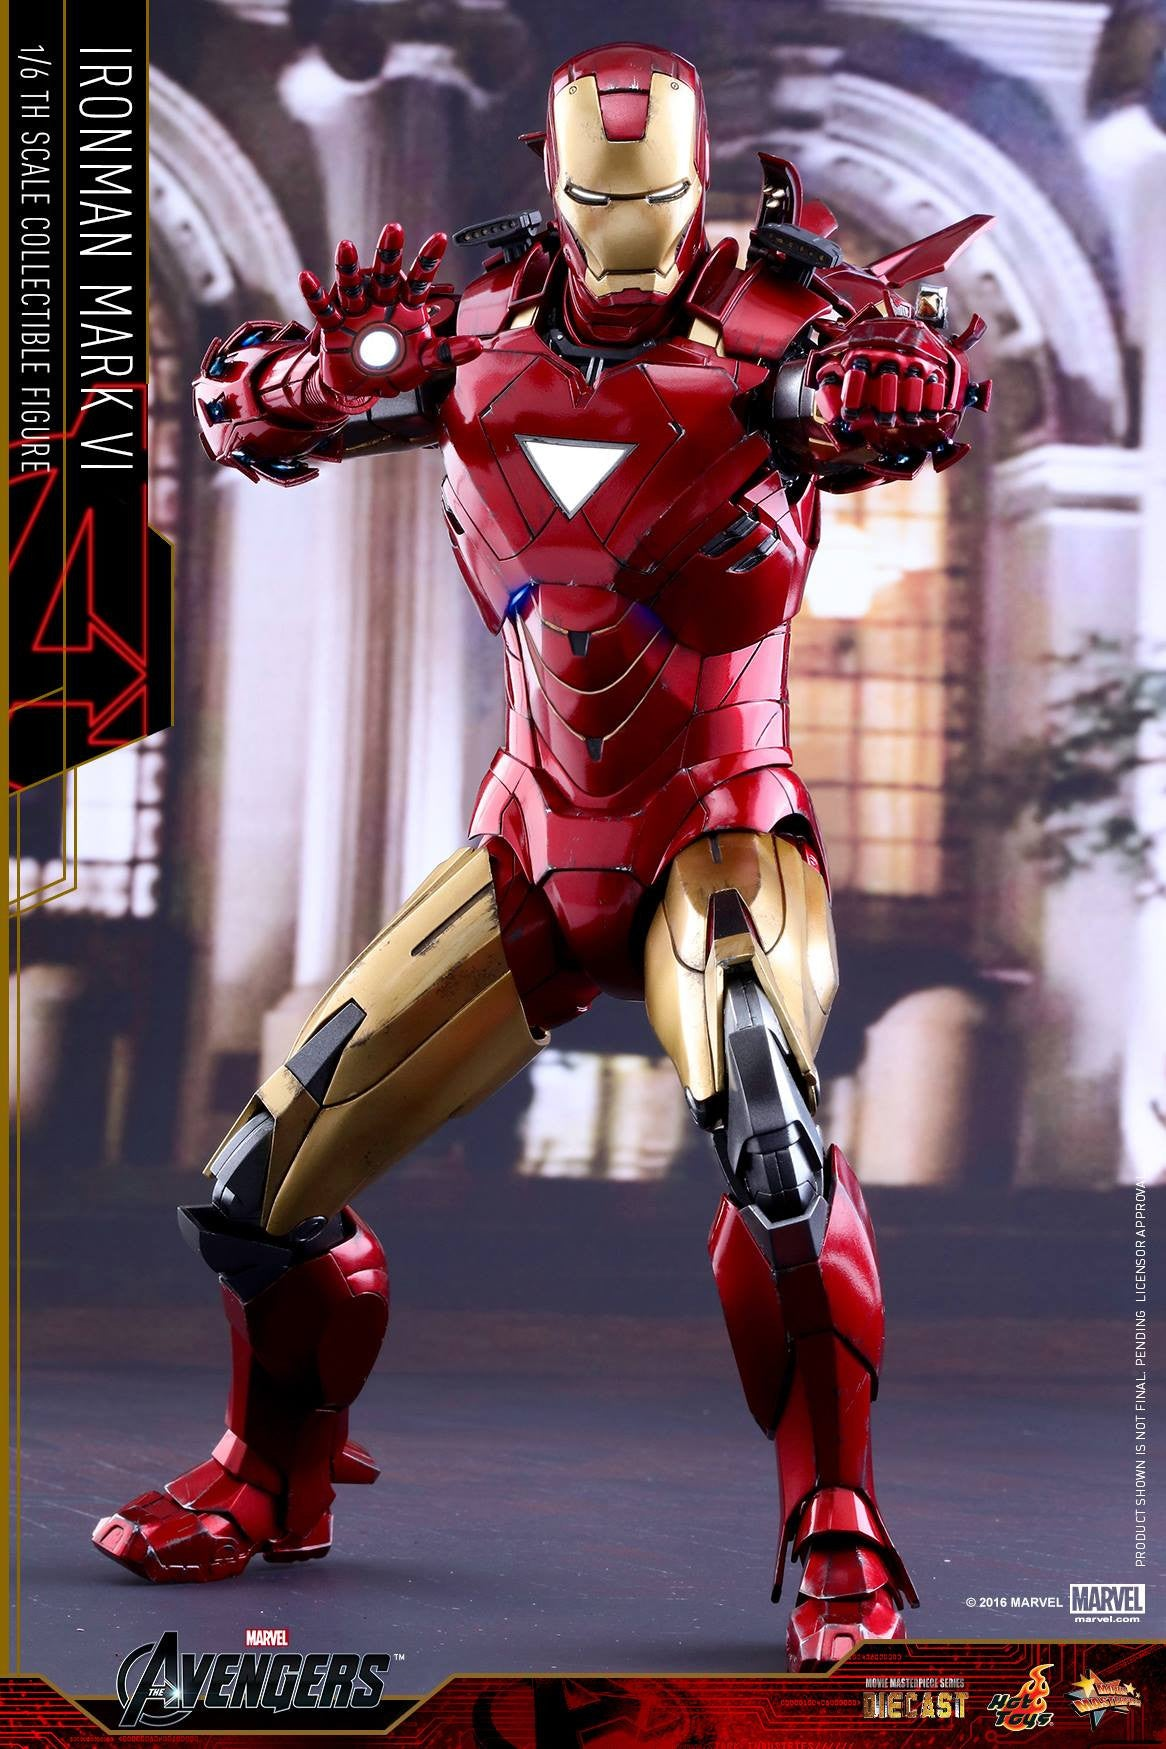 Hot Toys - MMS378D17 - The Avengers - Iron Man Mark VI (DIECAST) (Normal Edition) - Marvelous Toys - 12